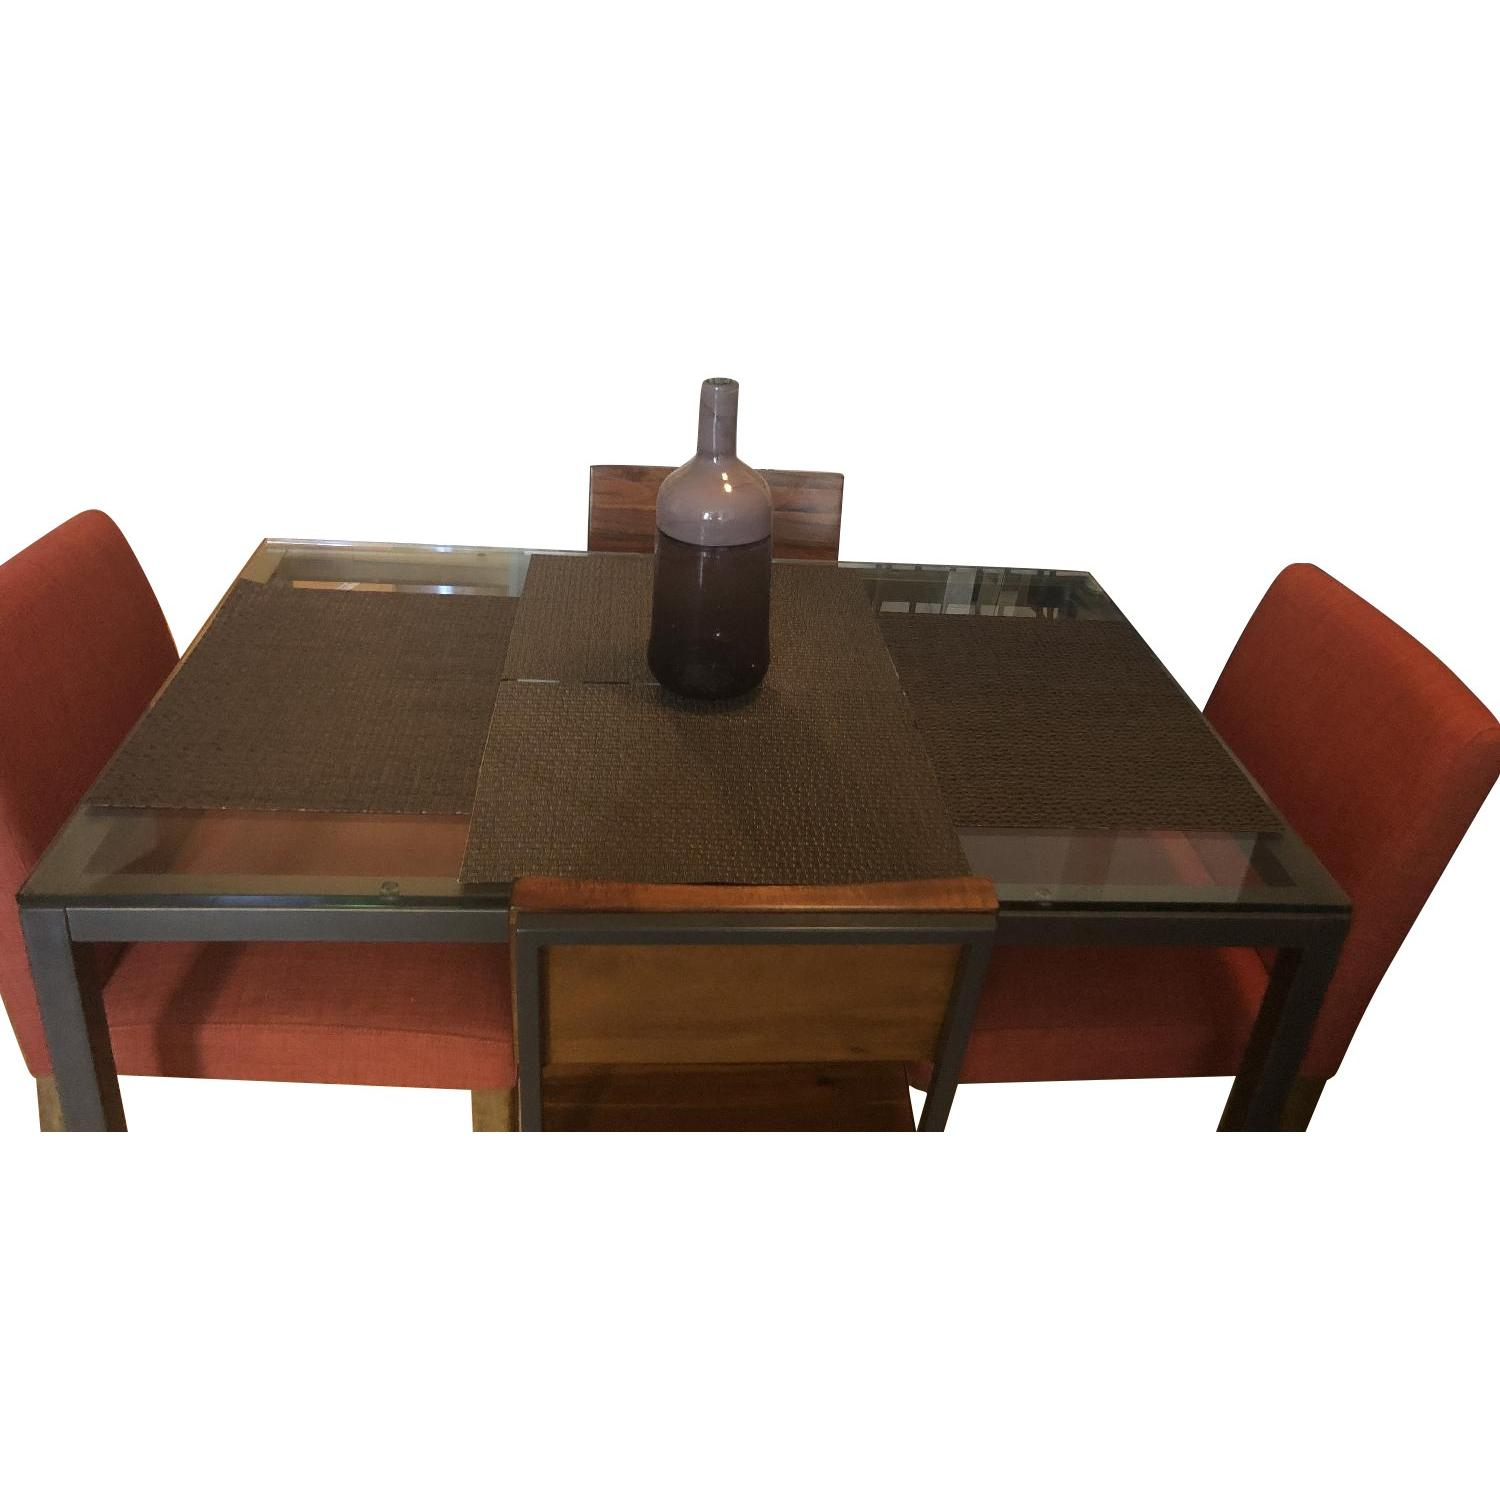 West Elm Glass Dining Table w/ 4 Chairs